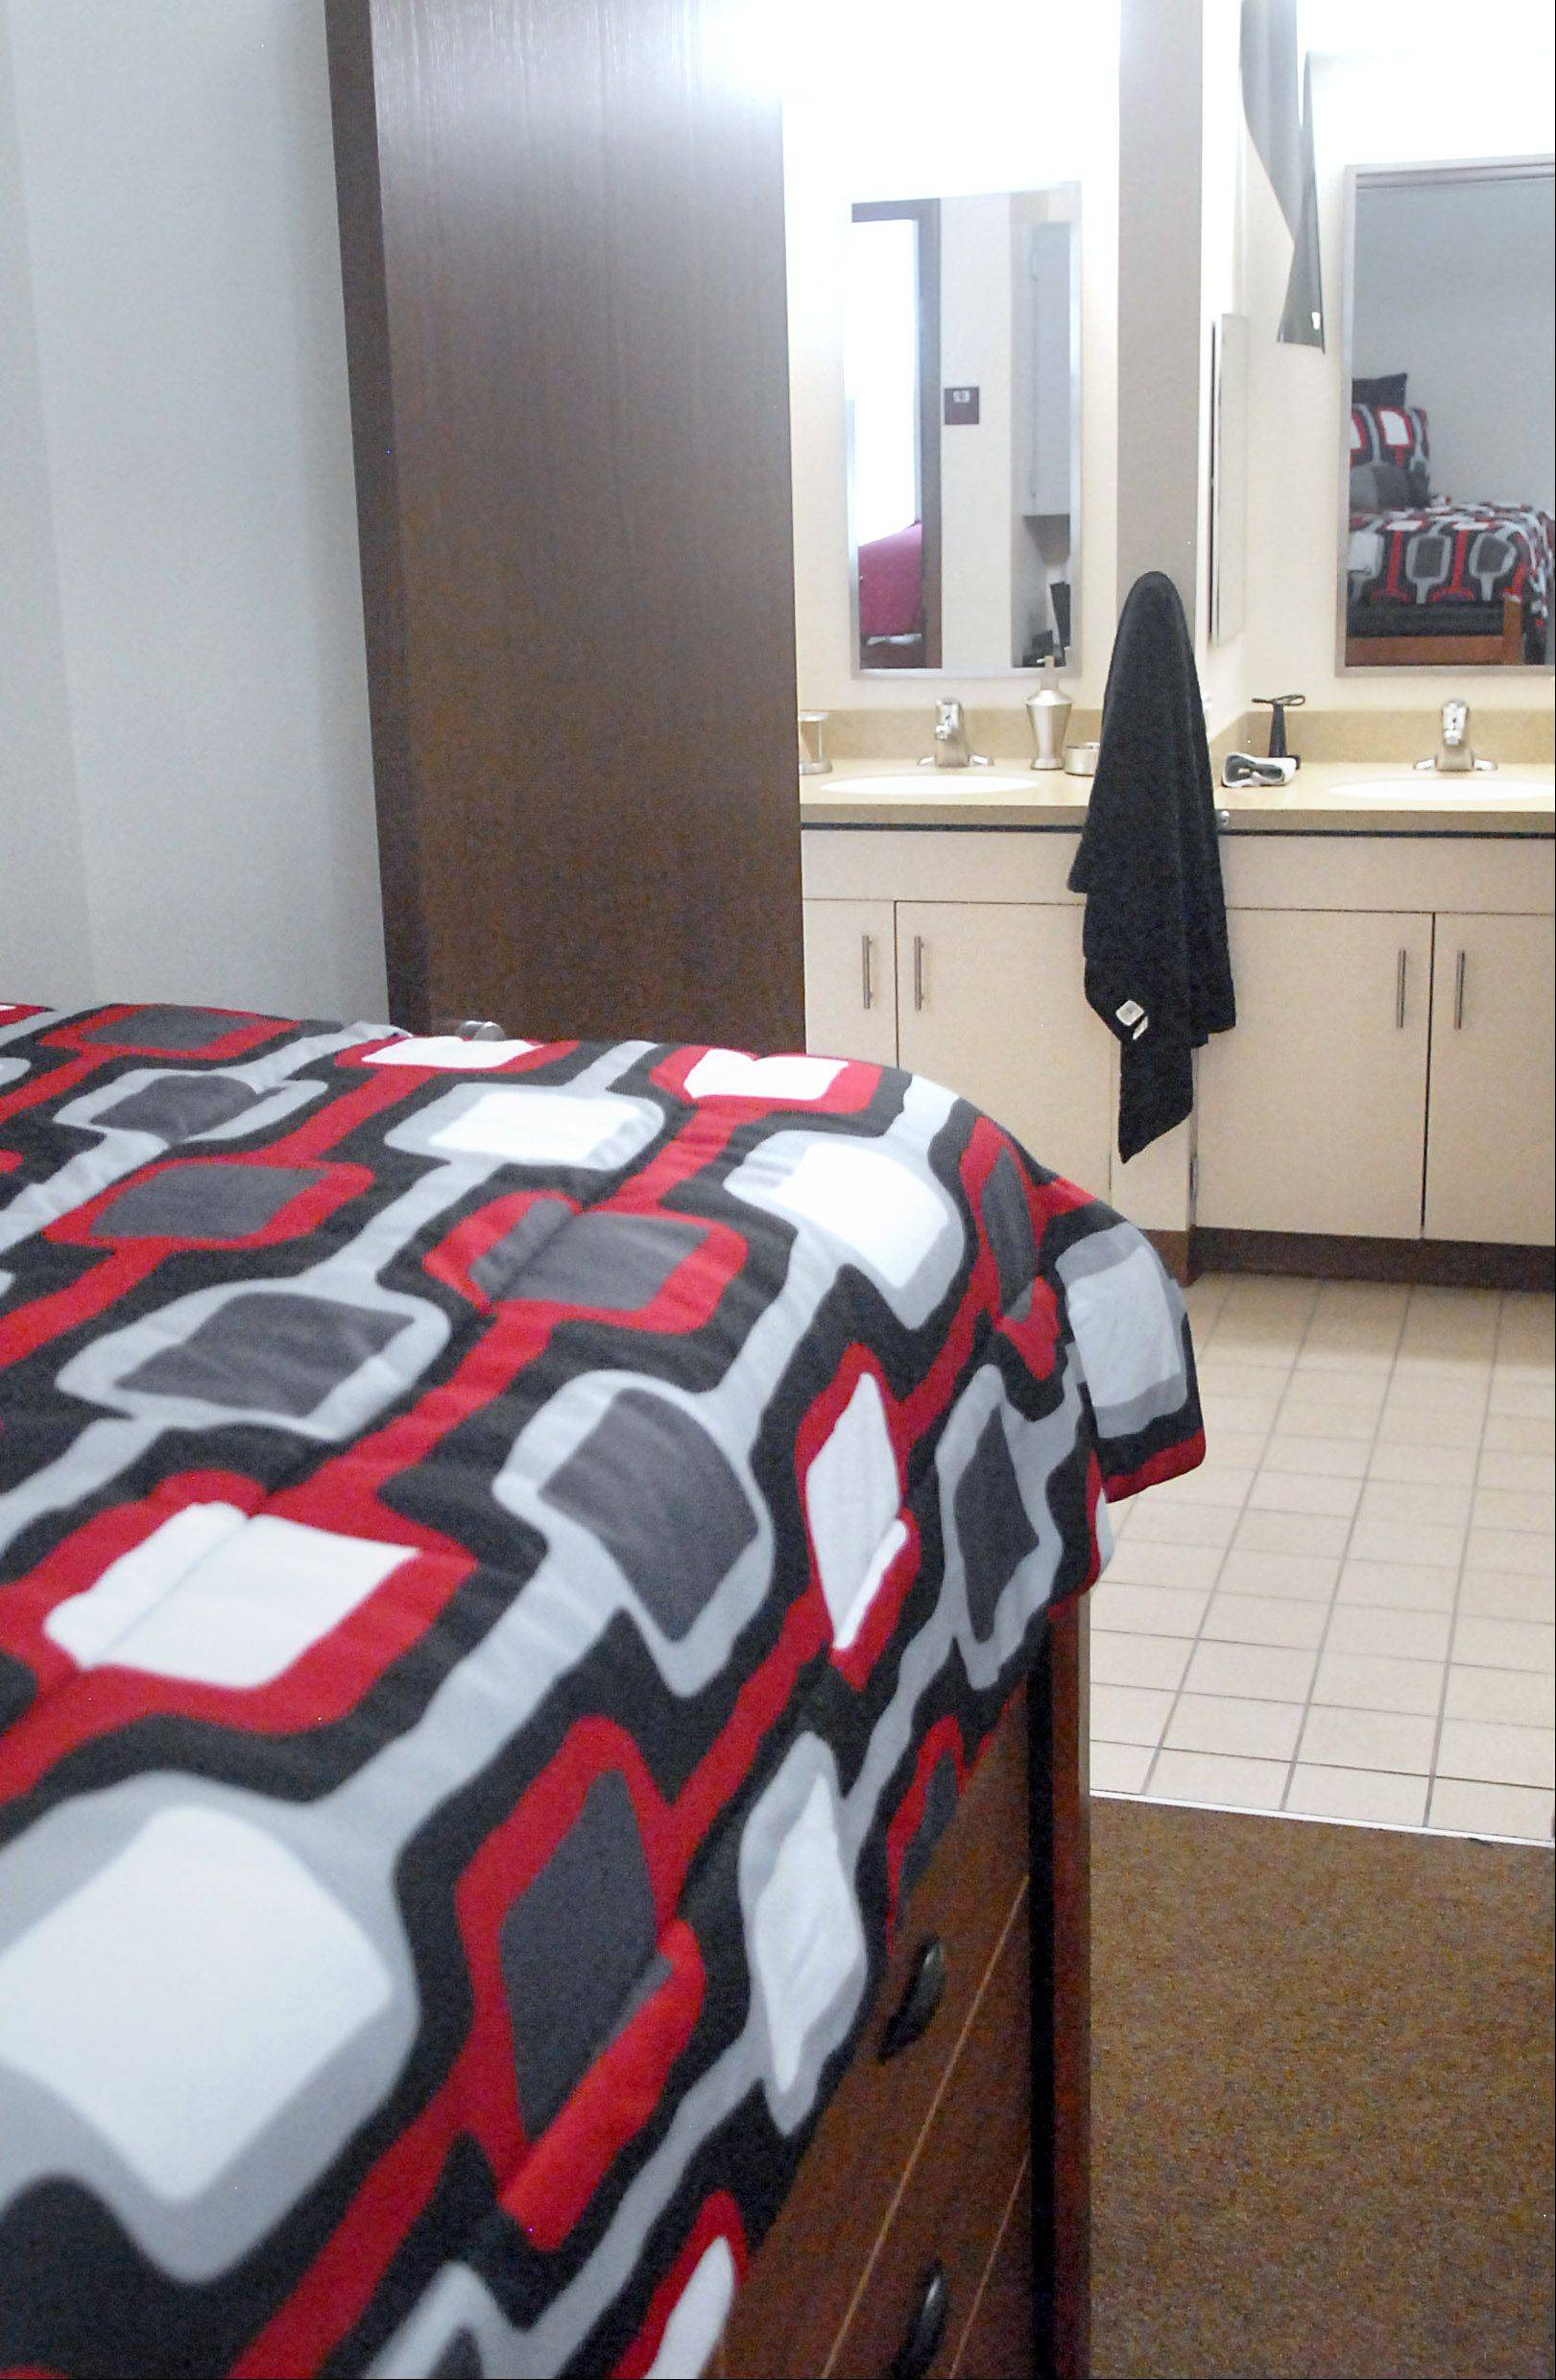 A dorm room is pictured at New Residence Hall West at Northern Illinois University in DeKalb on Thursday, August 23. Students have their own bedrooms and share a bathroom with one other person.